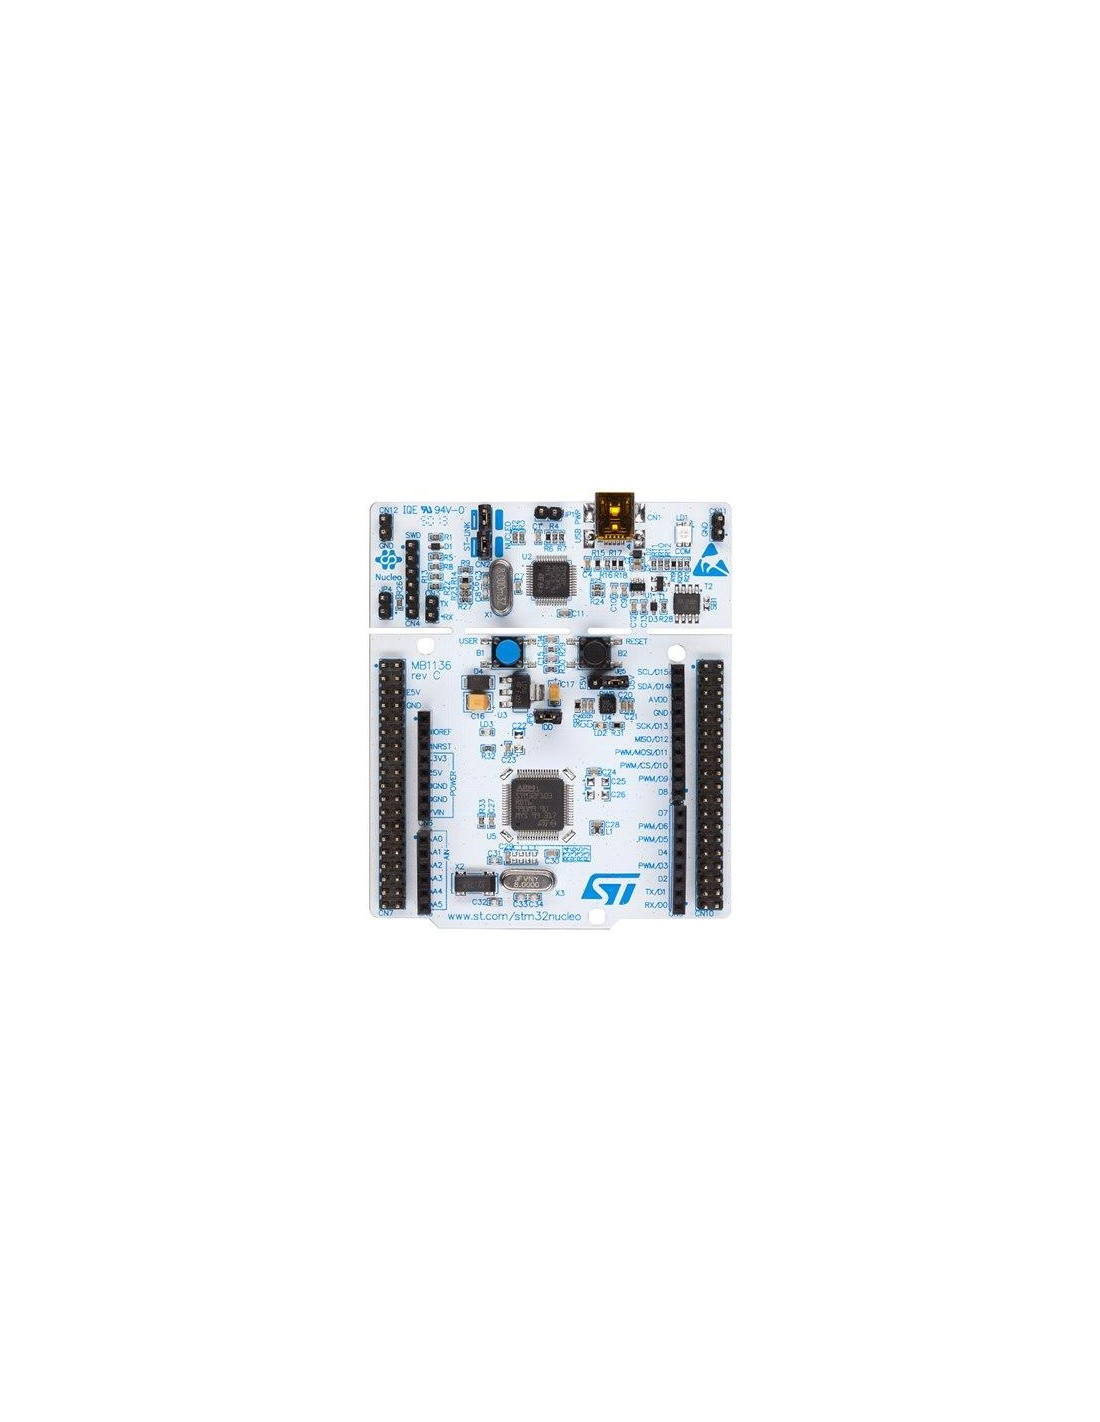 NUCLEO-L152RE (STM32 Nucleo development board for STM32 L1 series - with  STM32L152RE MCU, supports Arduino)